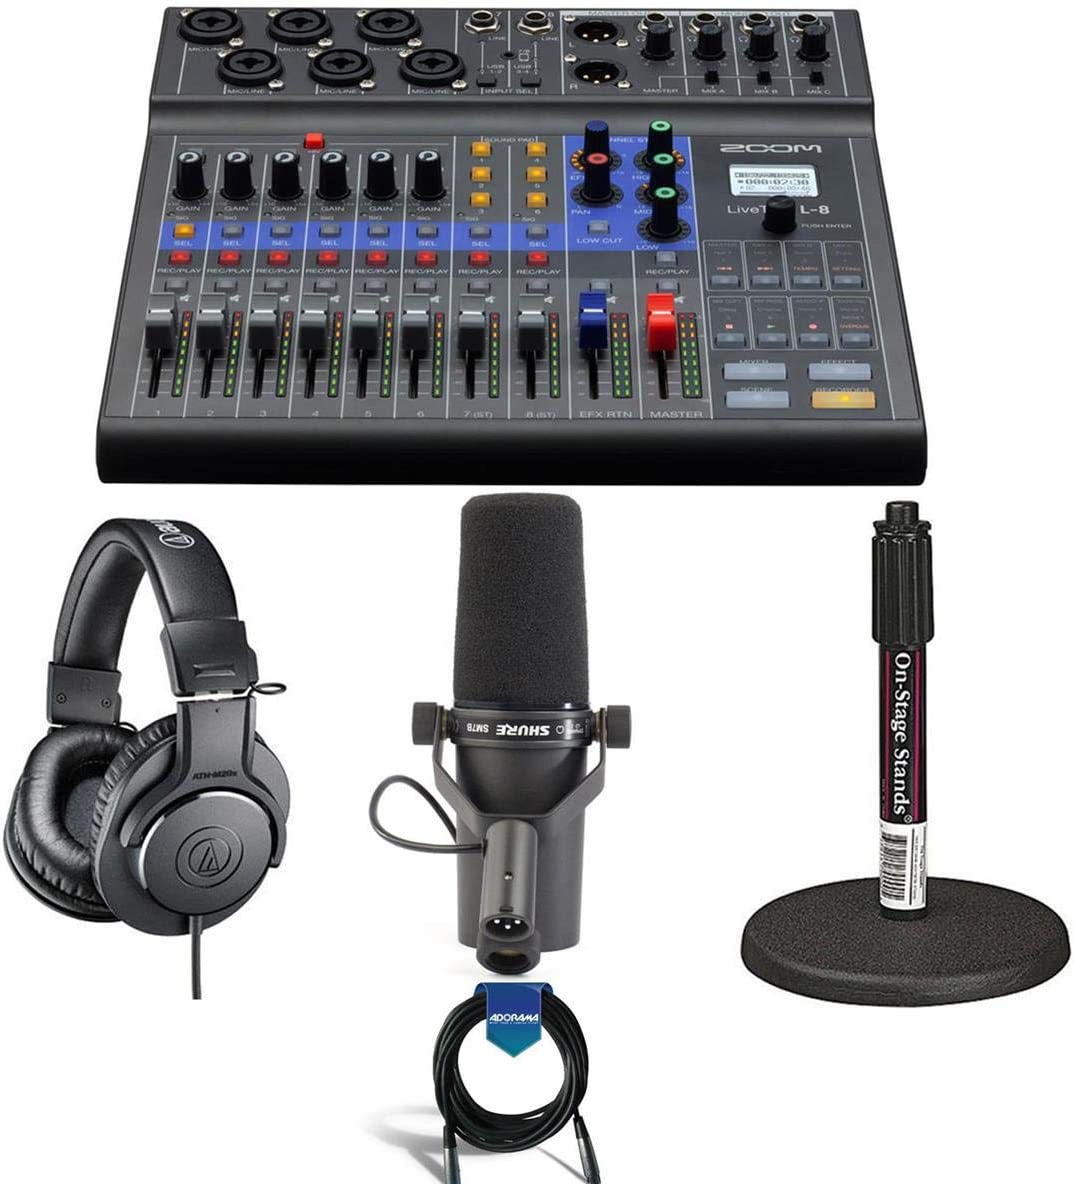 Zoom LiveTrak L-8 Portable 8-Channel Digital Mixer and Multitrack Recorder - Bundle with Shure SM7B Cardioid Vocal Mic, On-Stage DS7200B Desktop Mic Stand, A-T ATH-M20x Pro Monitor Headphones, Cable